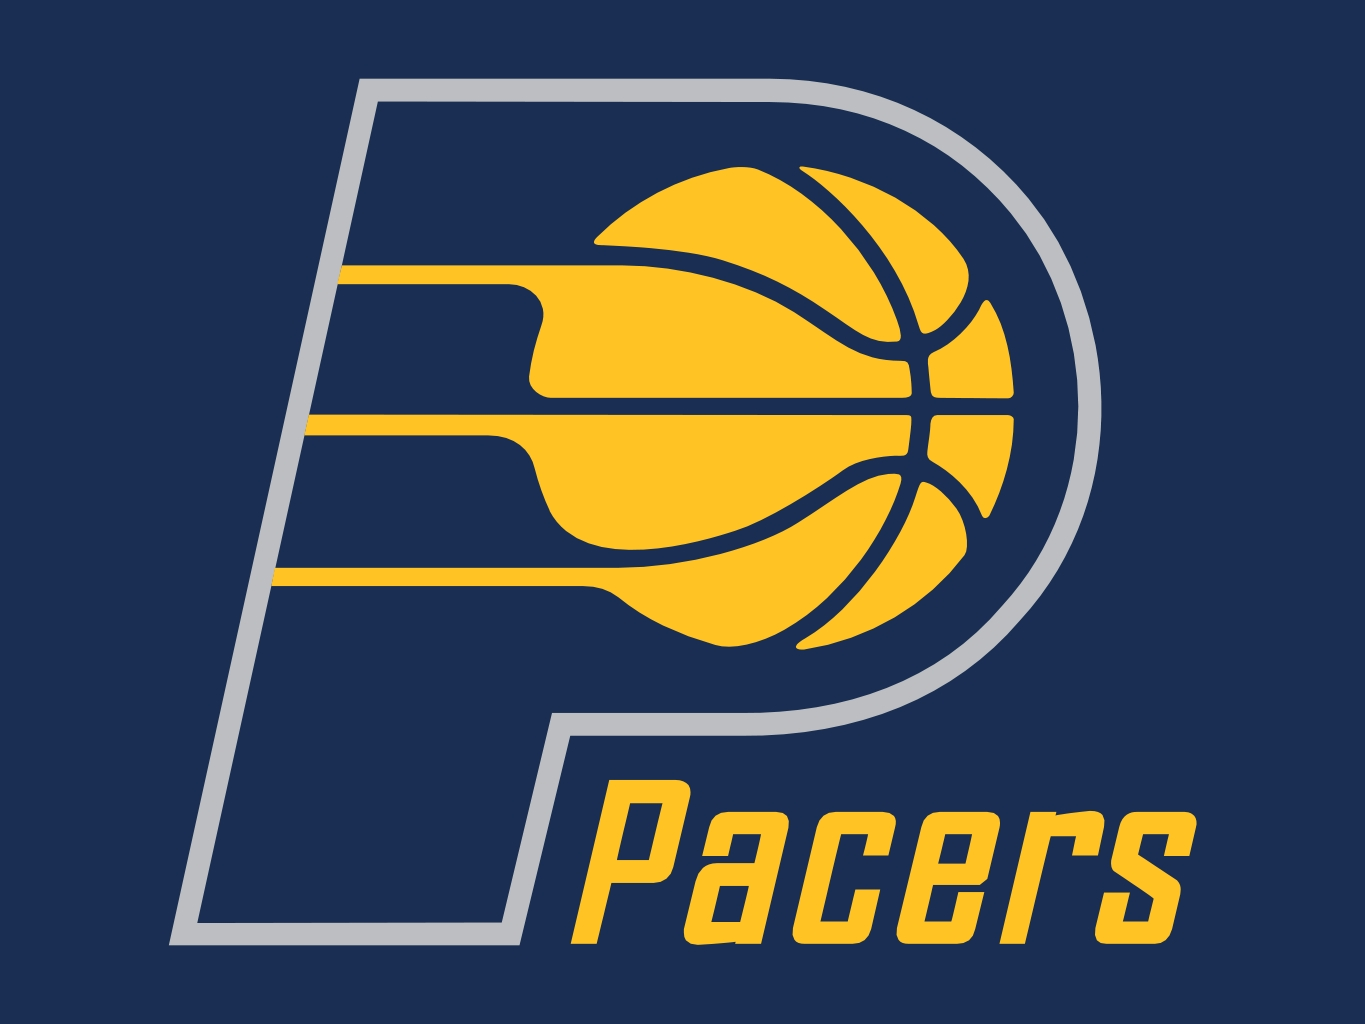 History Of All Logos All Indiana Pacers Logos